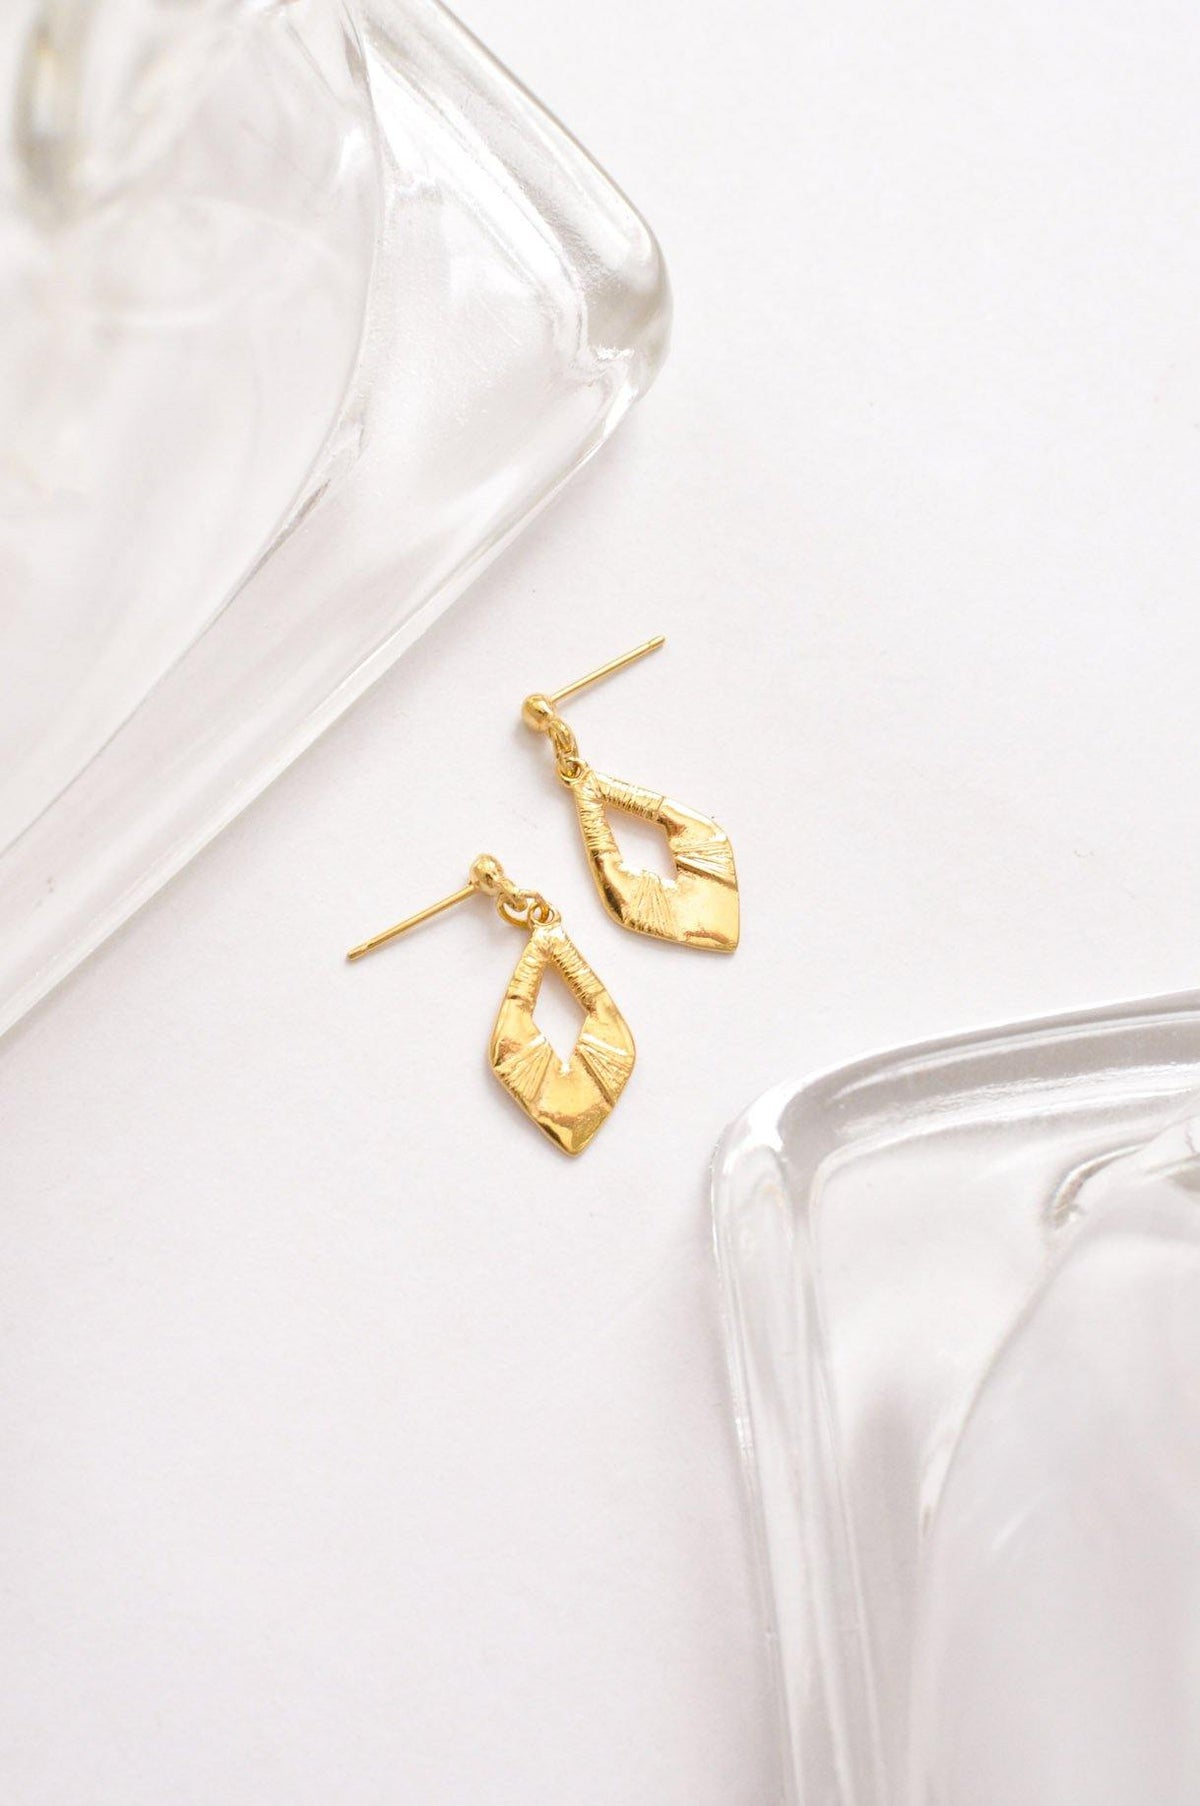 Vintage Dainty Diamond Pierced Earrings from Sweet and Spark.